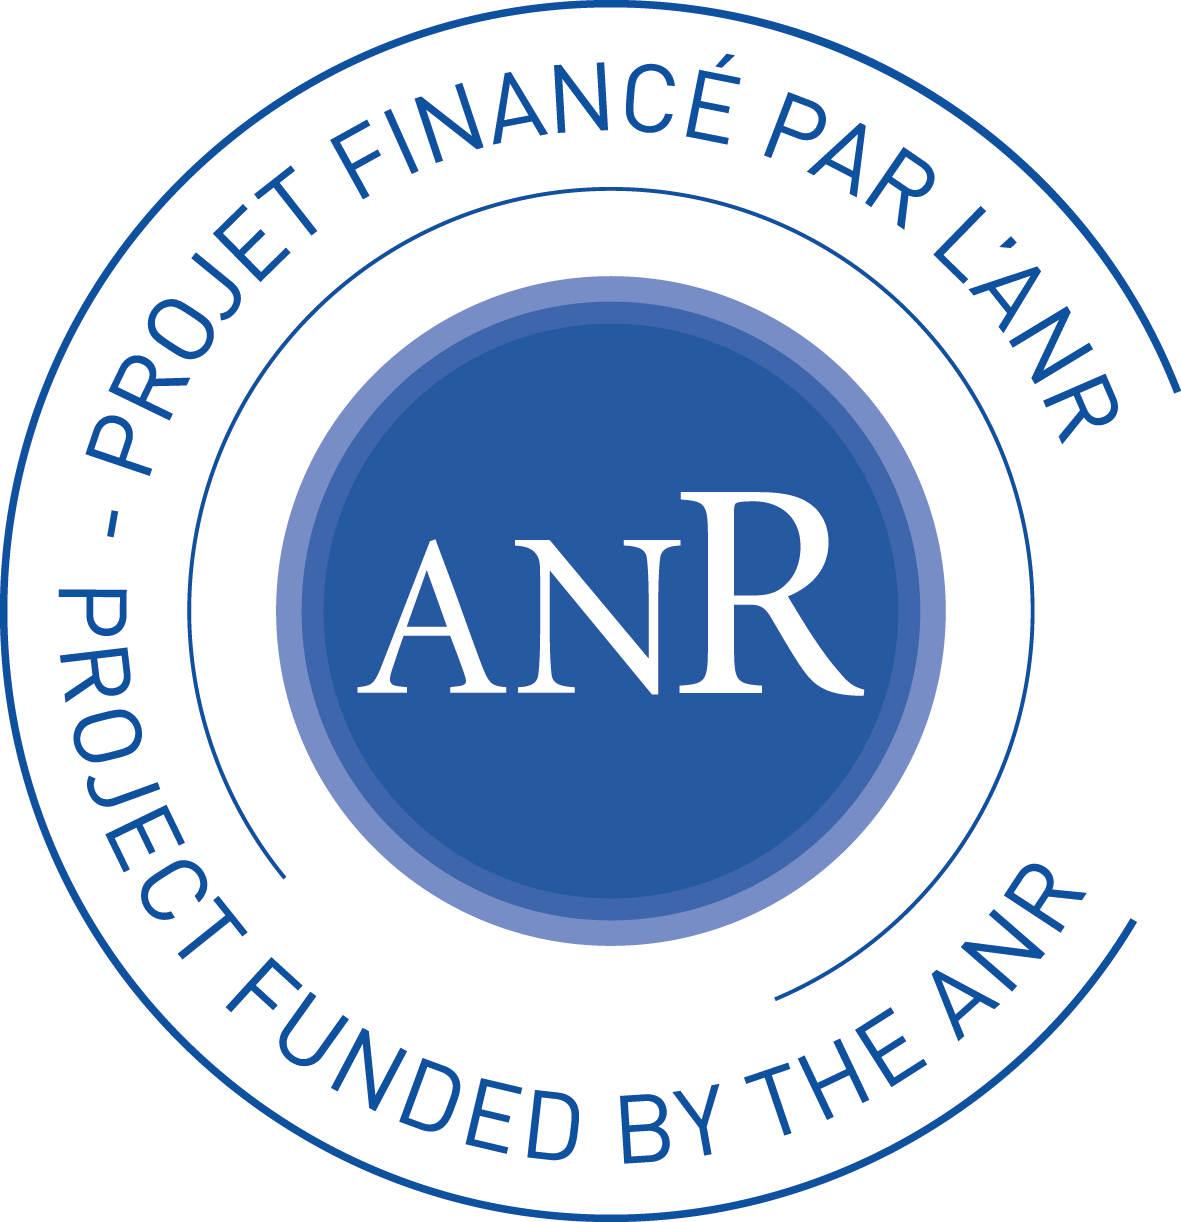 ANR-funded